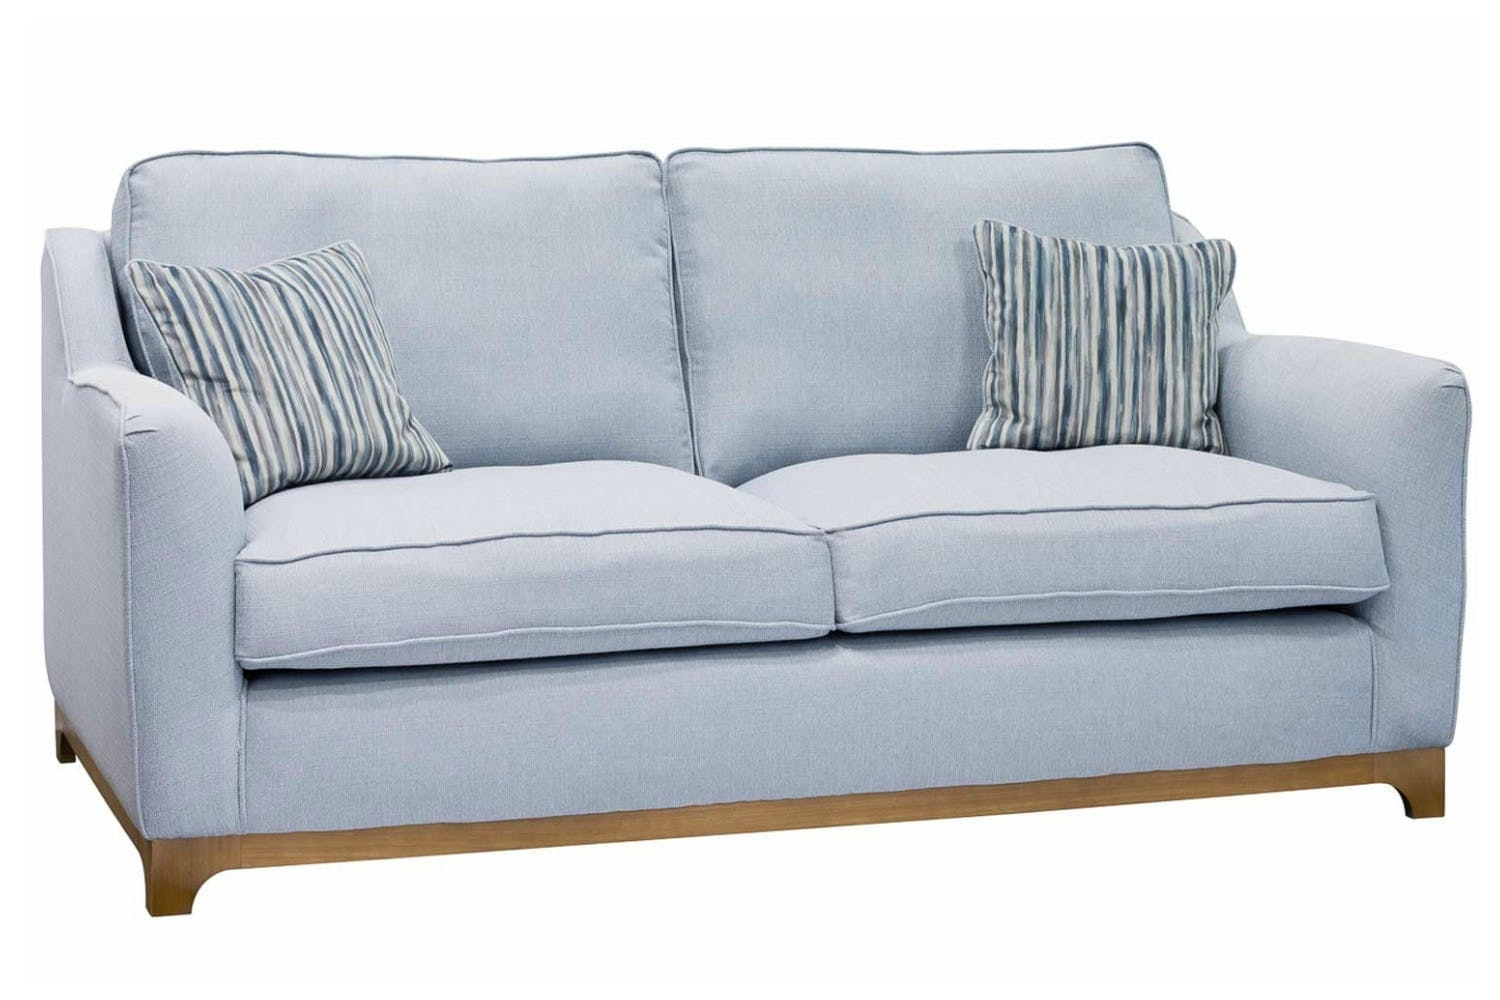 Casey 2-Seater Sofa